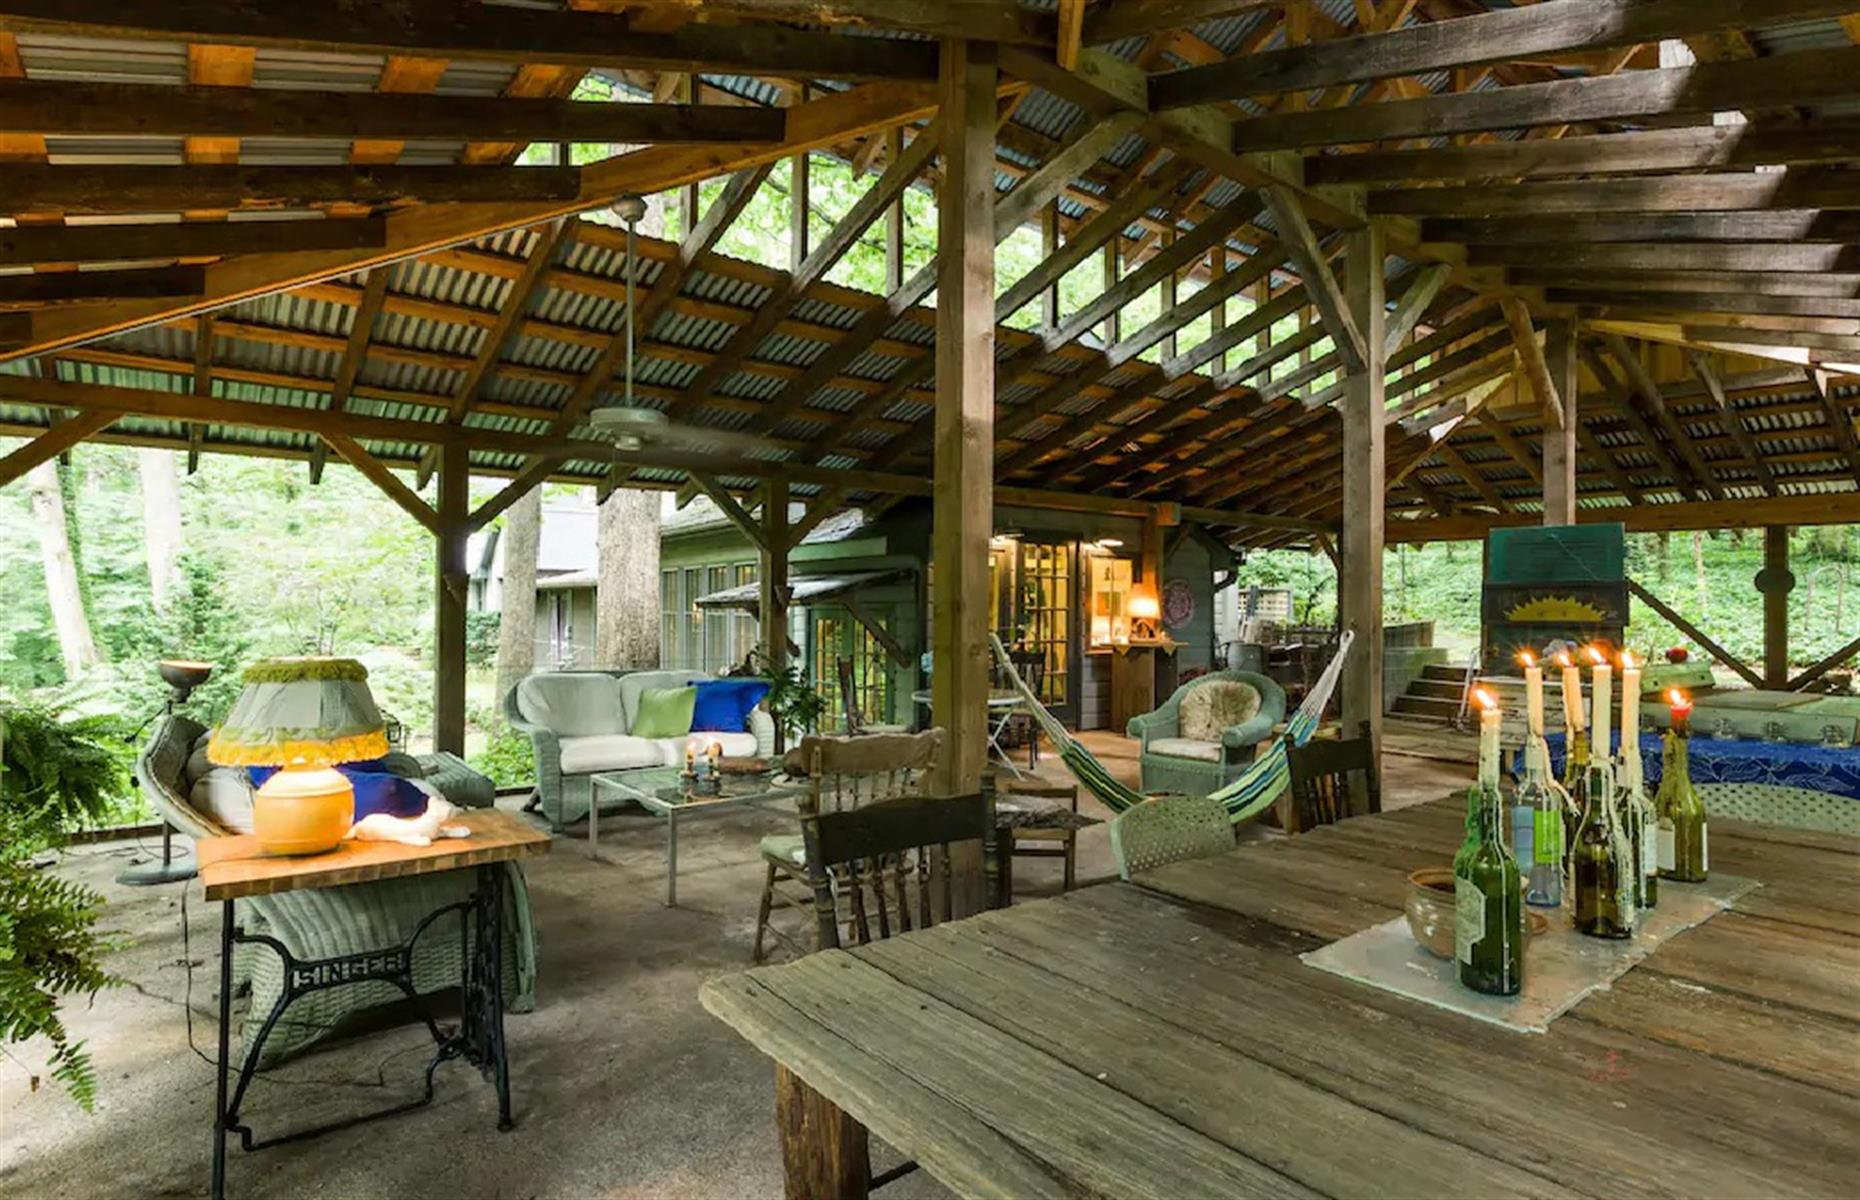 Slide 35 of 52: A one-of-a-kind home, this cabin in the woods is the peaceful and serene escape you've been looking for. Simplistic from the outside, high-tech on the inside, the three-bedroom cabin has an expansive outdoor living area, surrounded by lush woodland. Located just outside of Winston-Salem in North Carolina, it's a brilliant escape with all the necessities within easy reach.